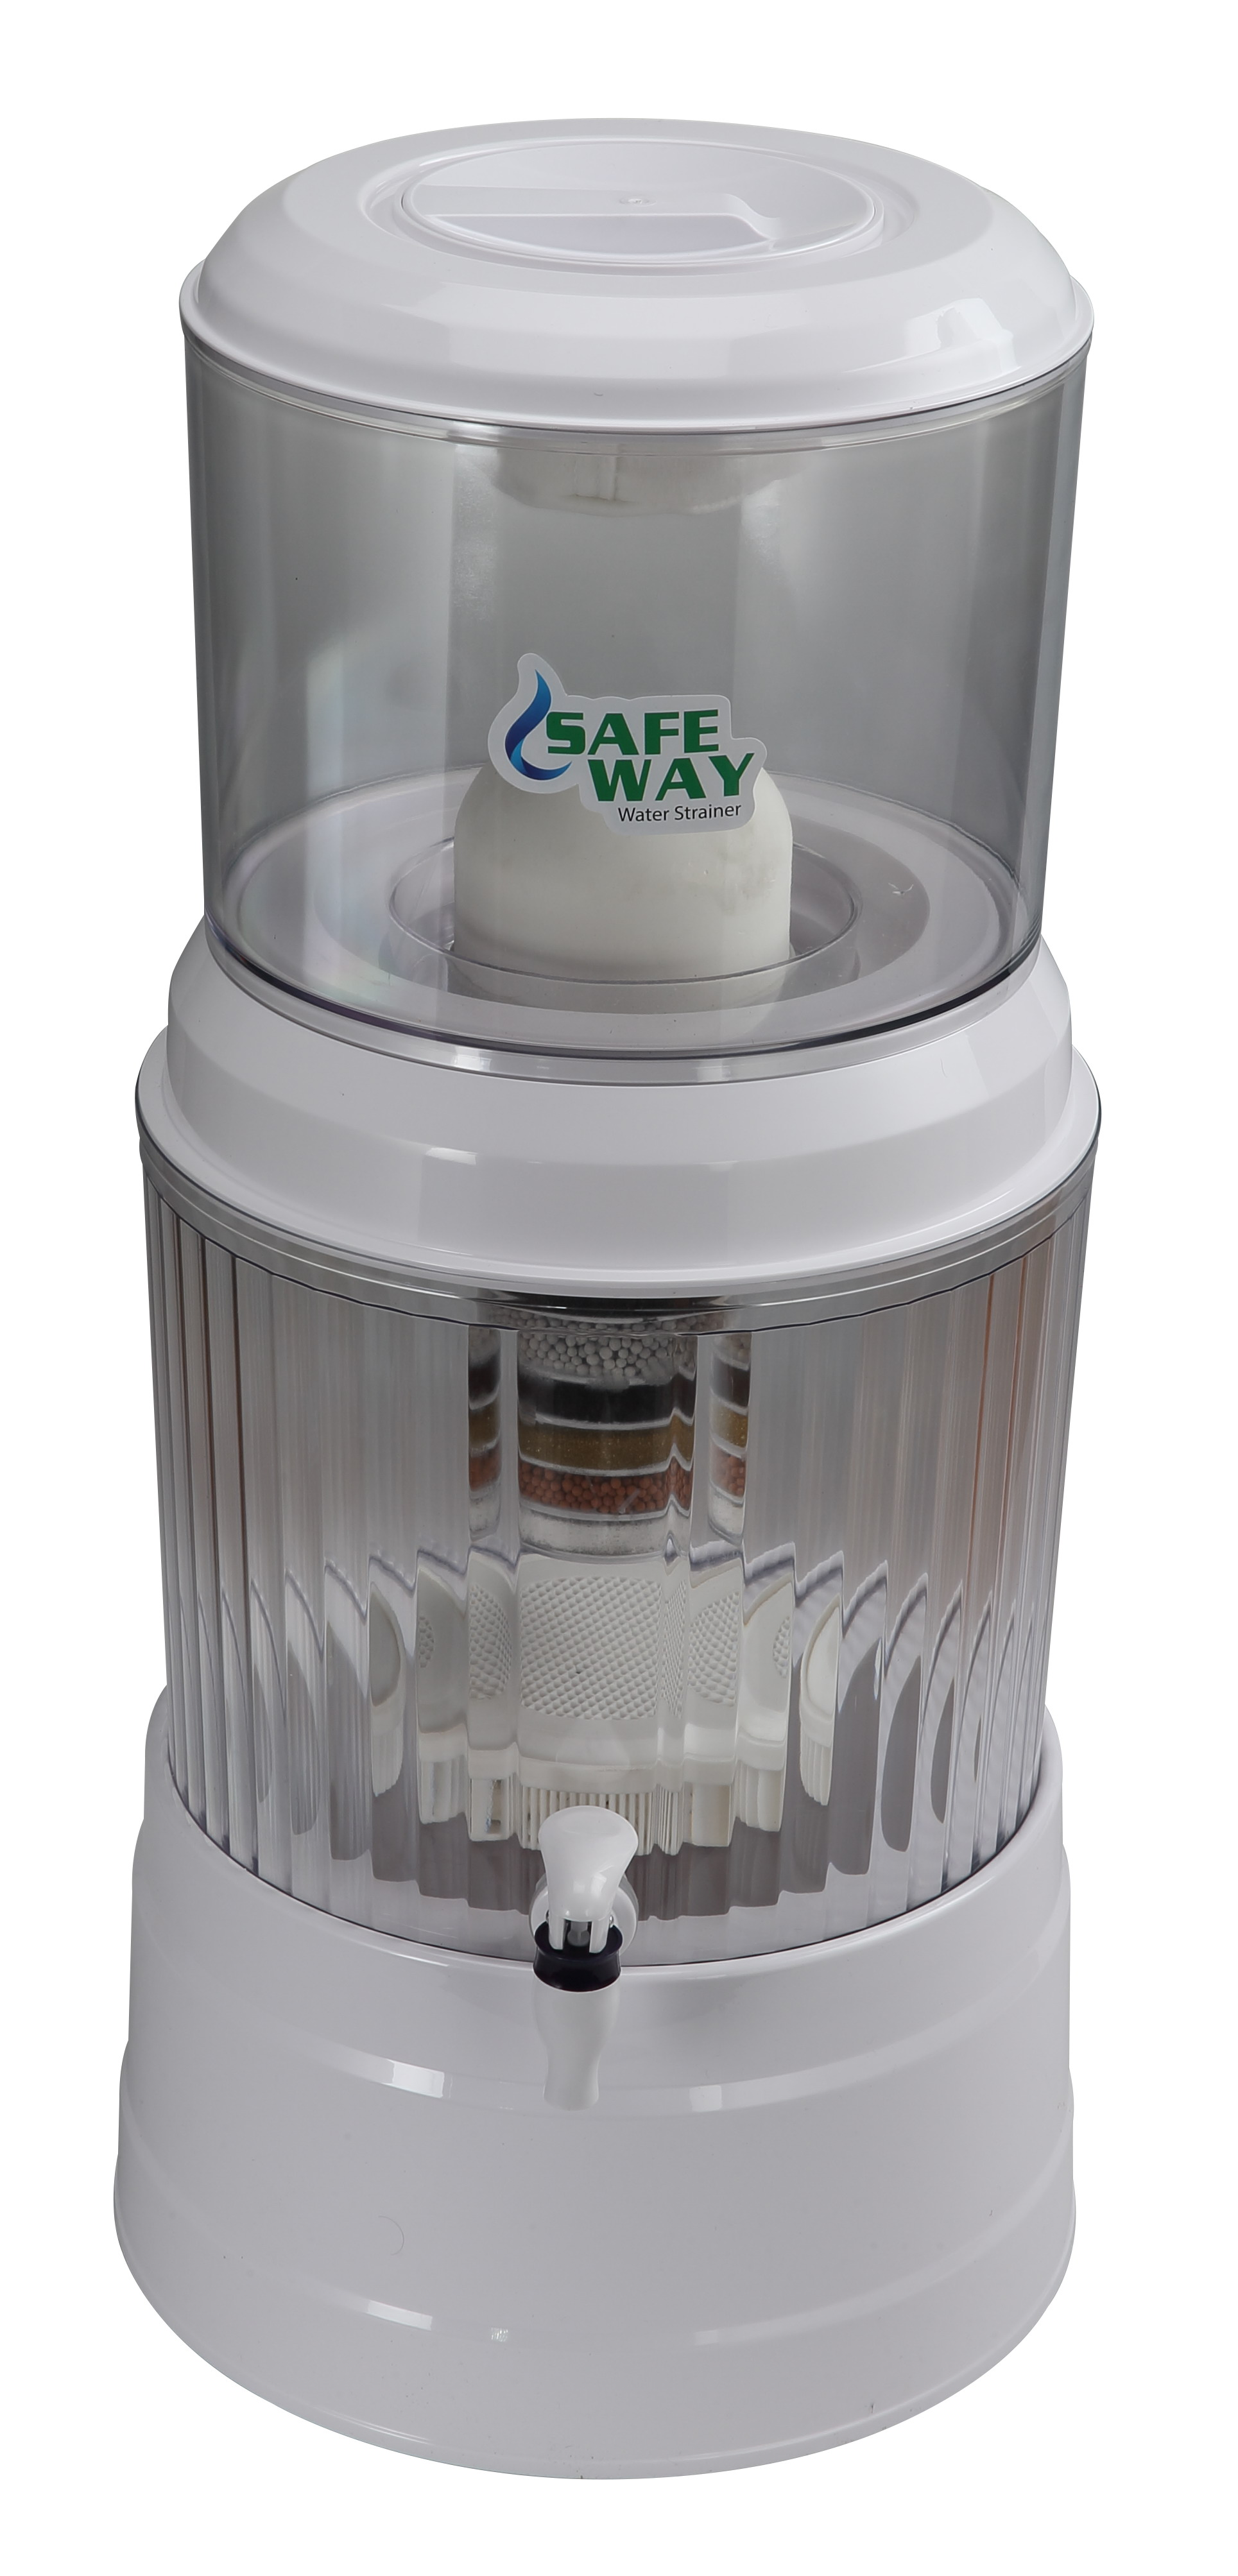 Safe Way Water Filter